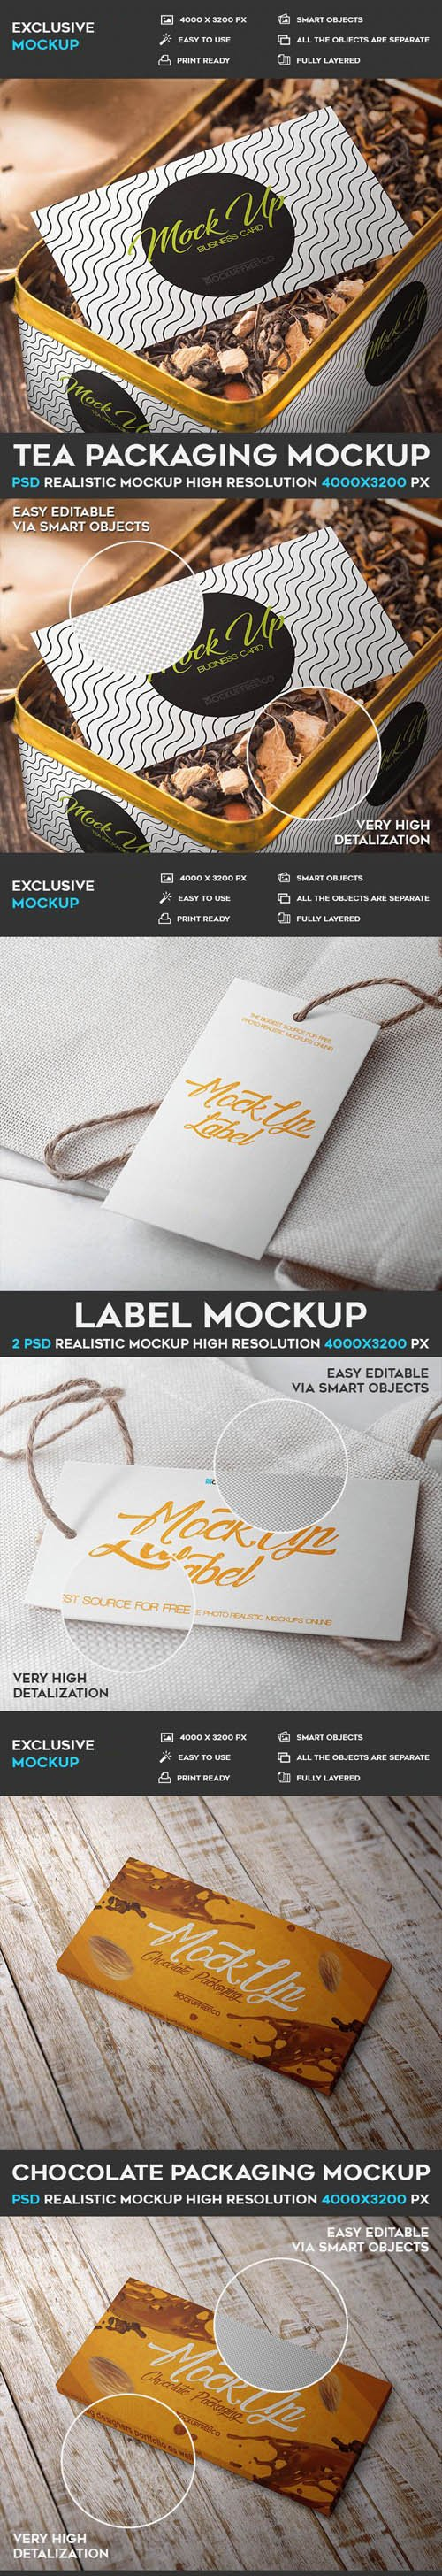 Tea & Chocolate Packaging + Label PSD Mockup Templates